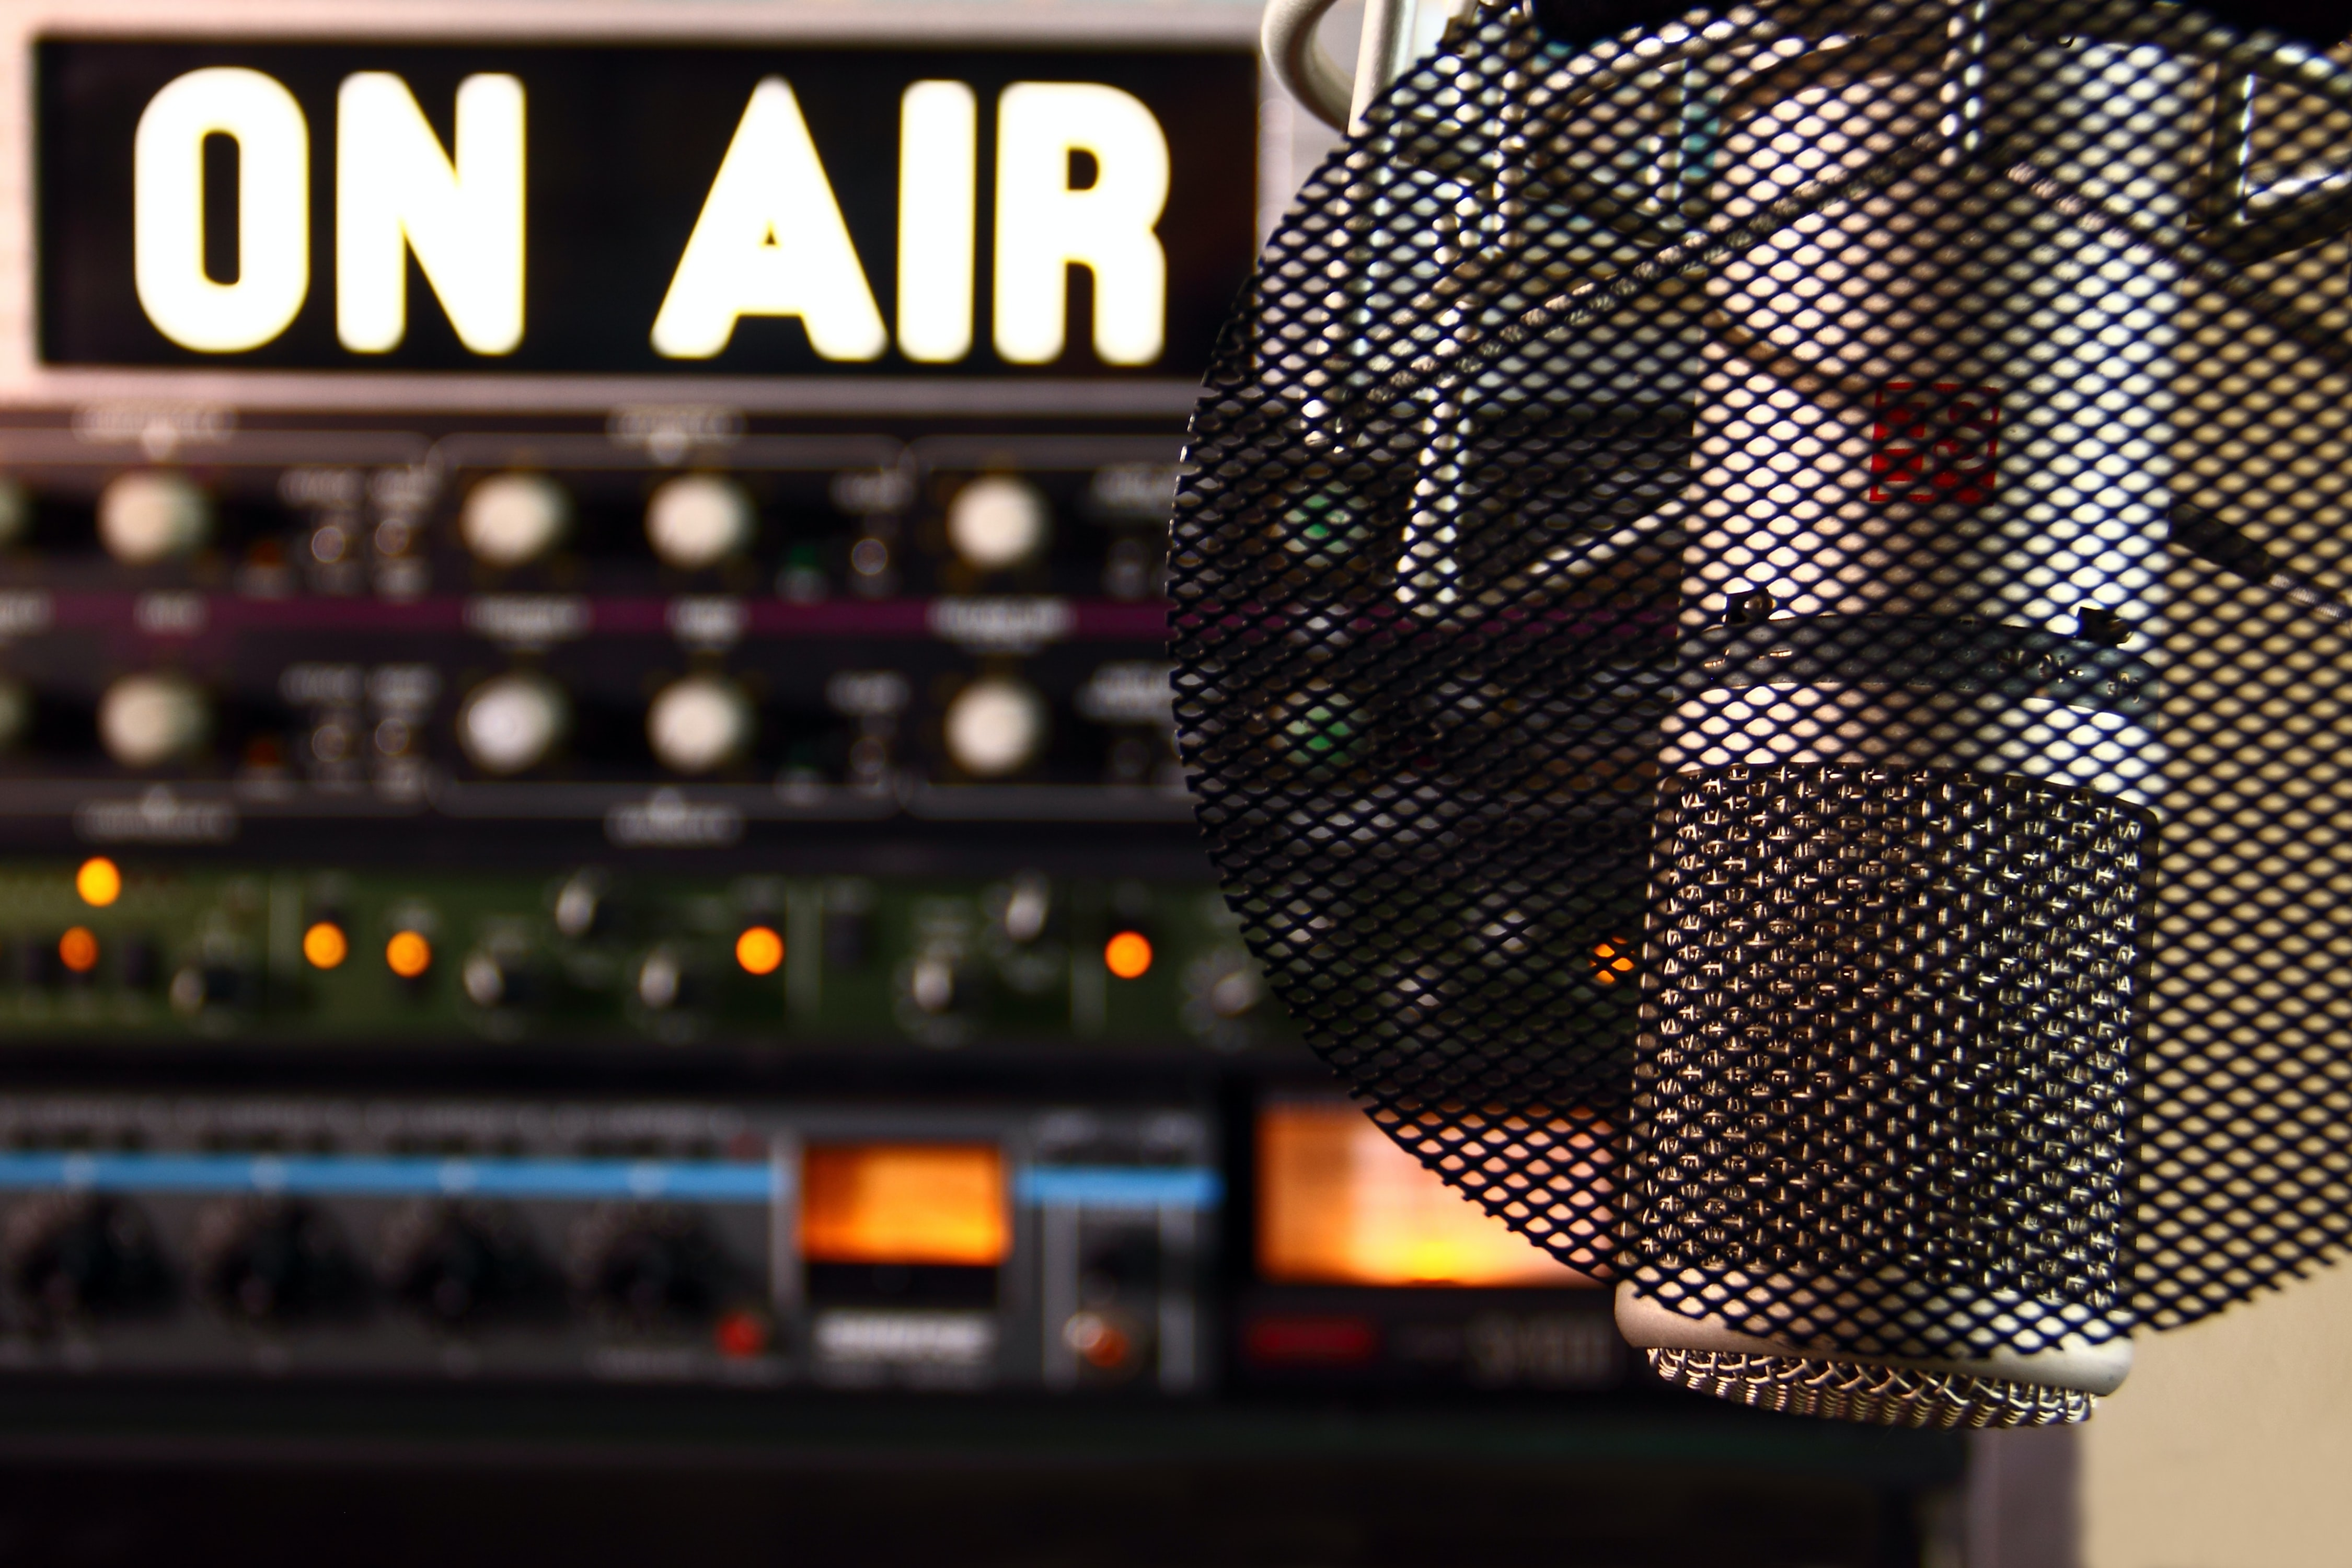 Image of a radio microphone